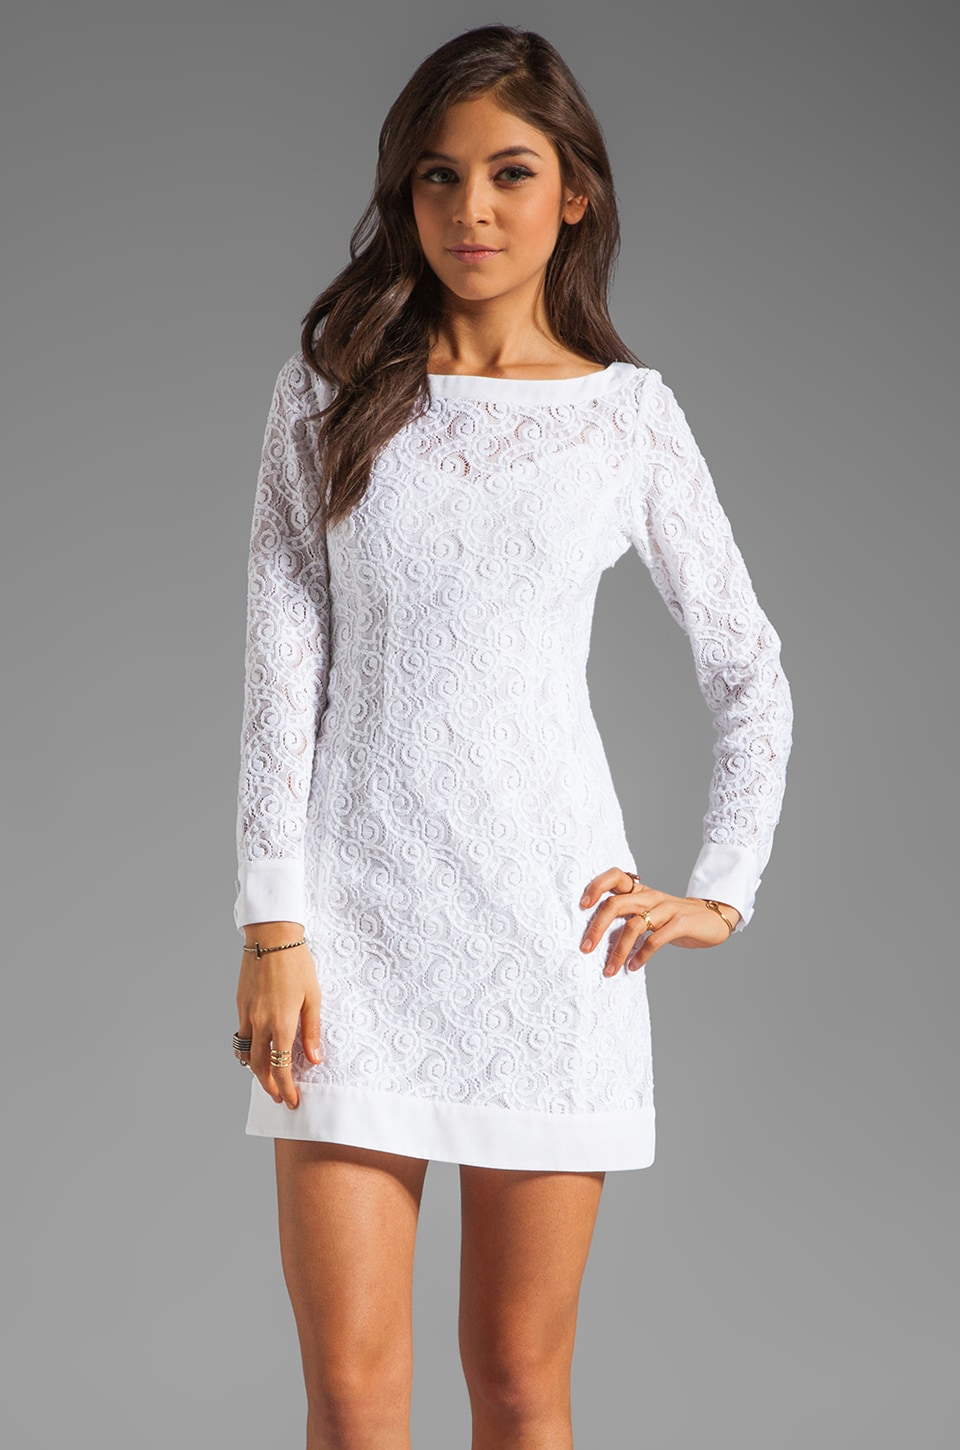 Nanette Lepore Beauty Lace Lithograph Dress in White